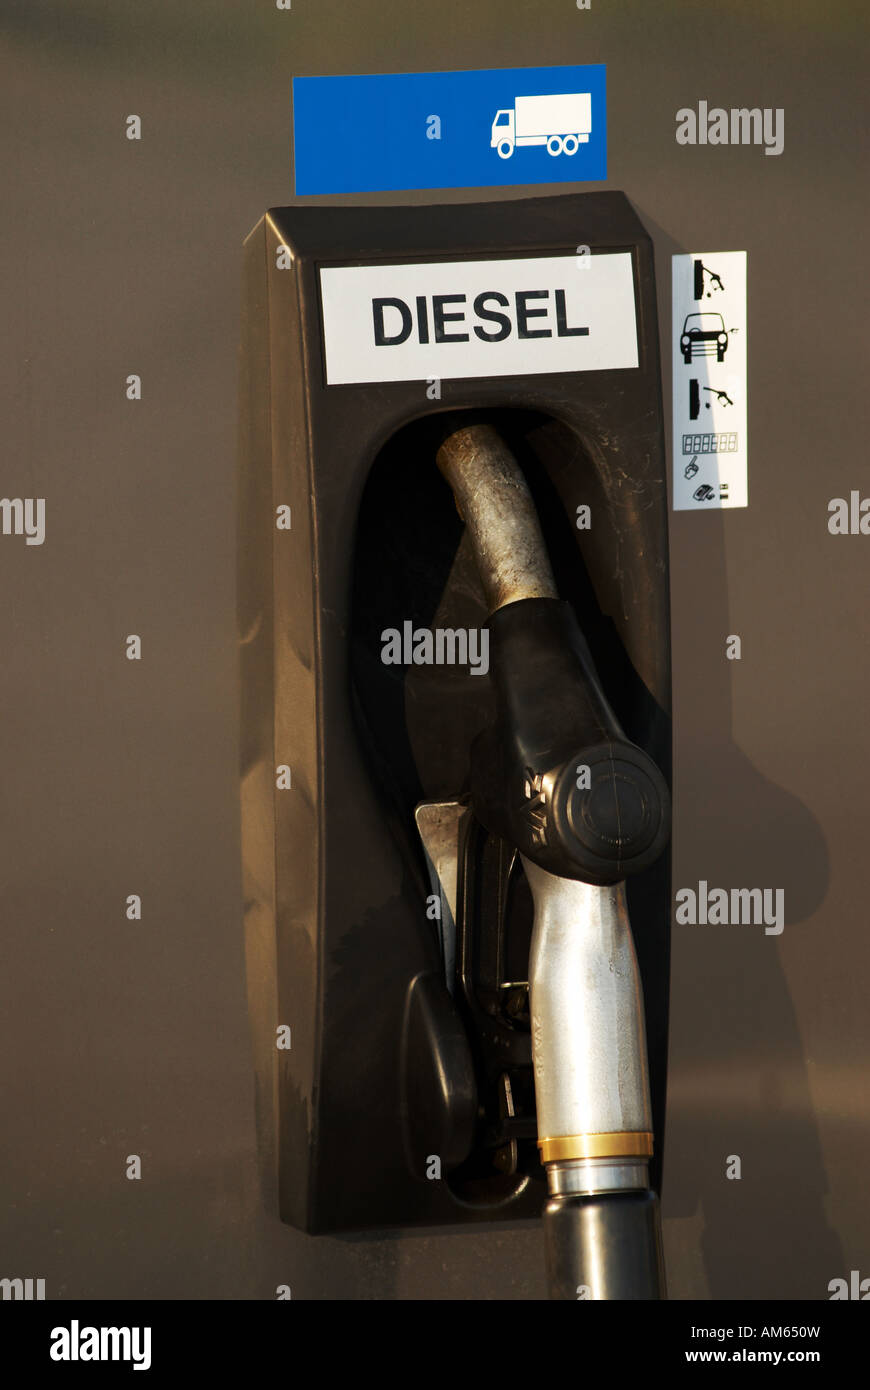 Diesel petrol pump at gas station - Stock Image